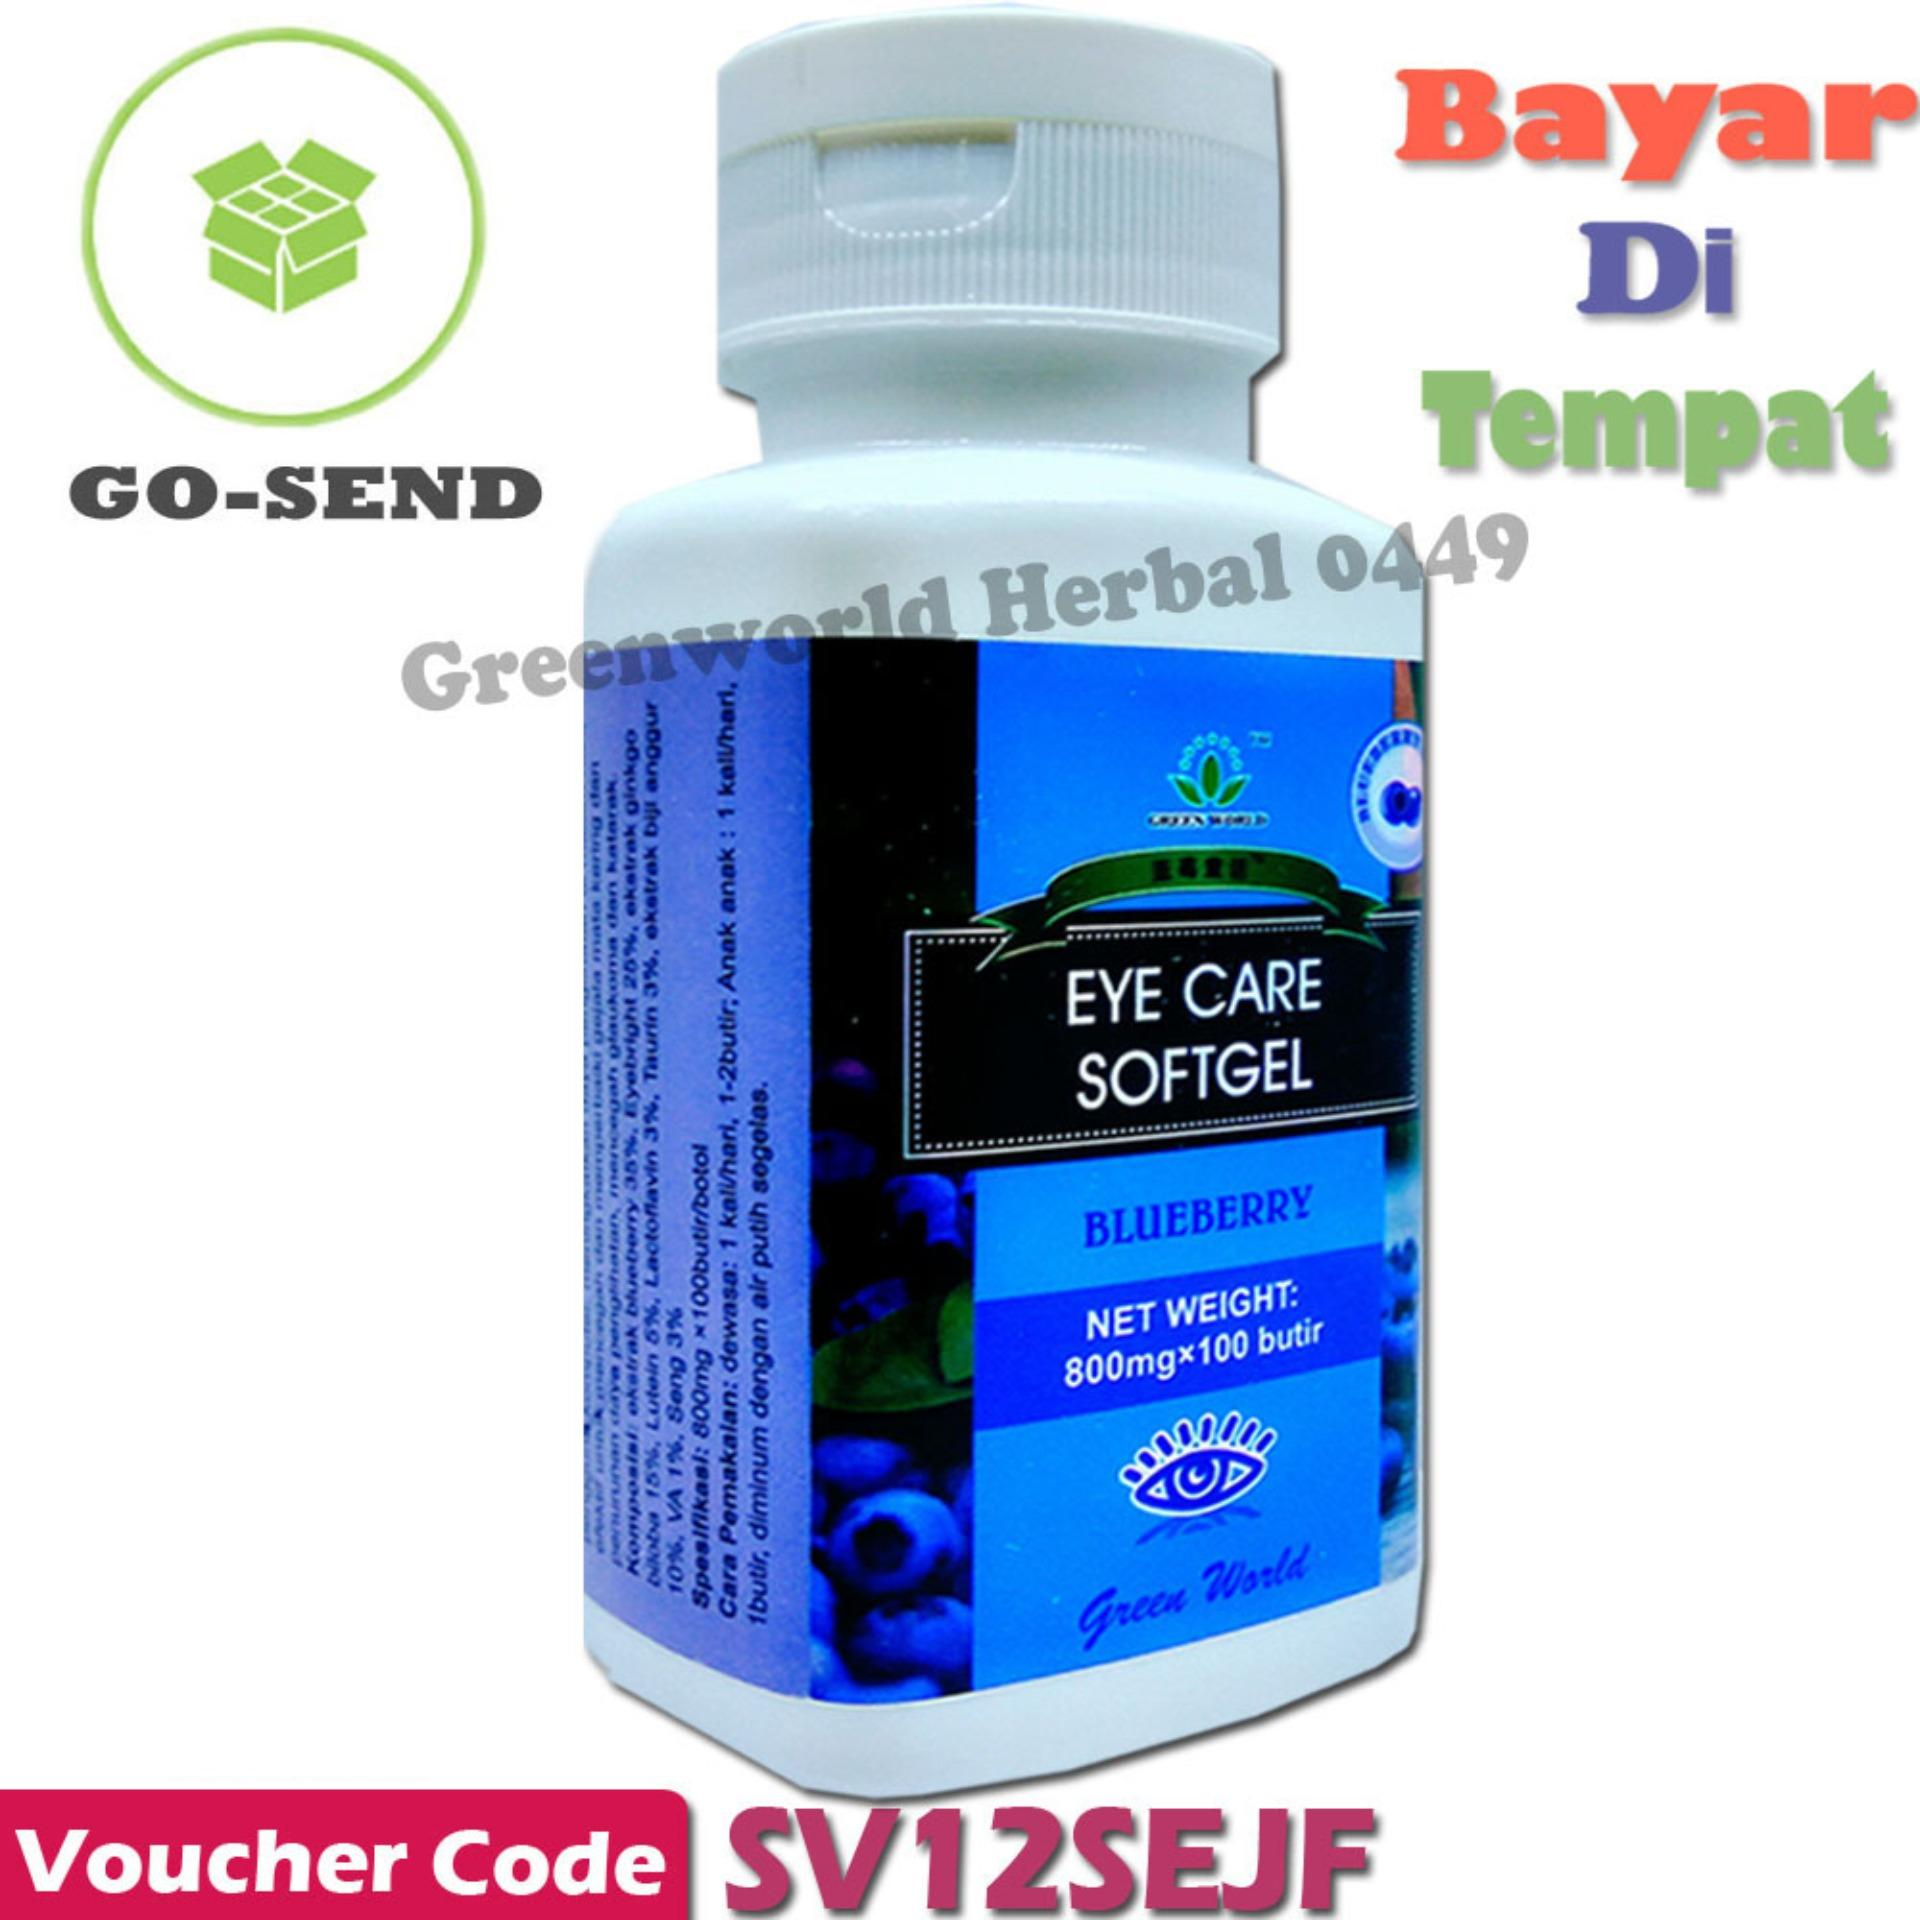 Green World Eye Care Softgel Obat Mata Herbal Murah